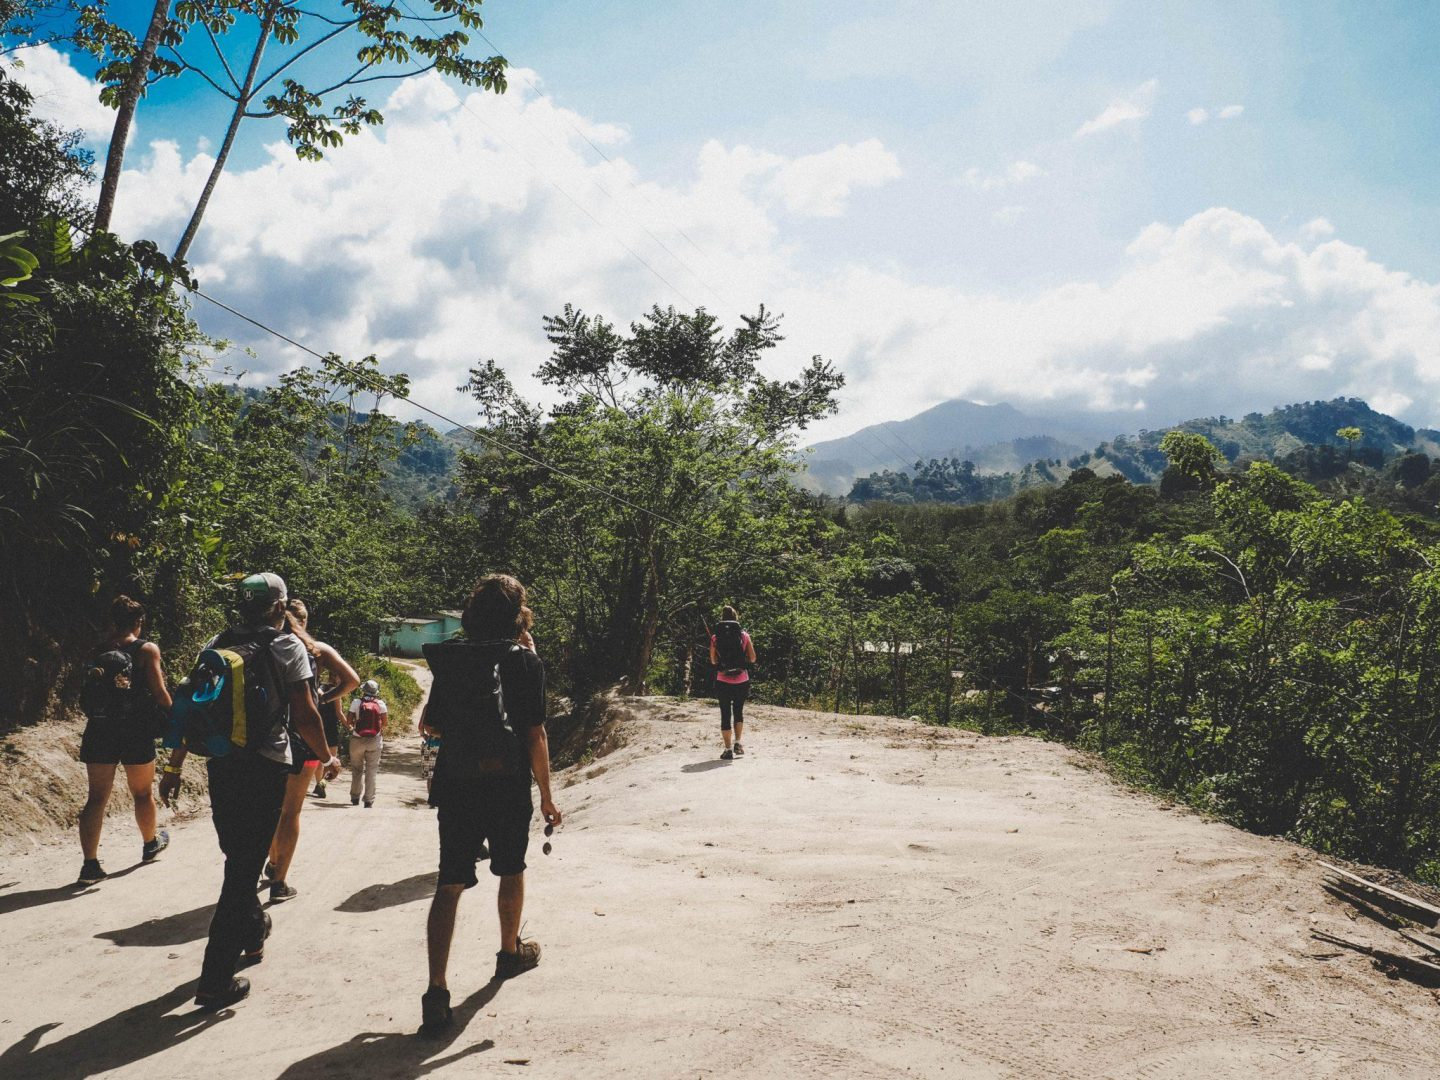 Colombian Guides | The Complete Guide to The Lost City Trek